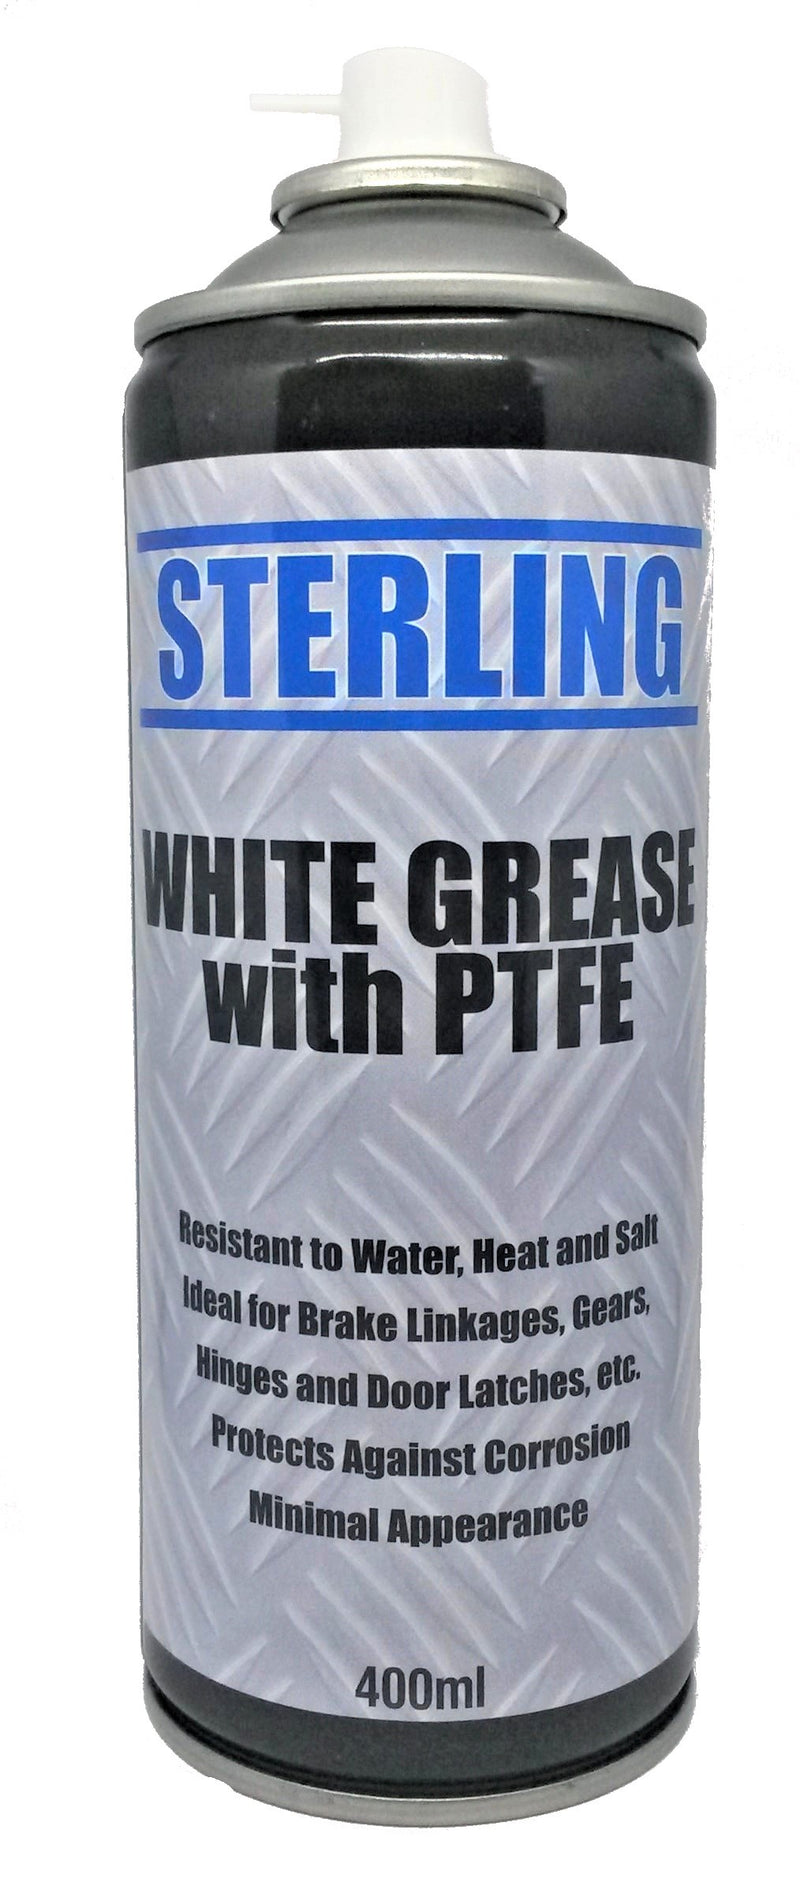 white grease spray with ptfe